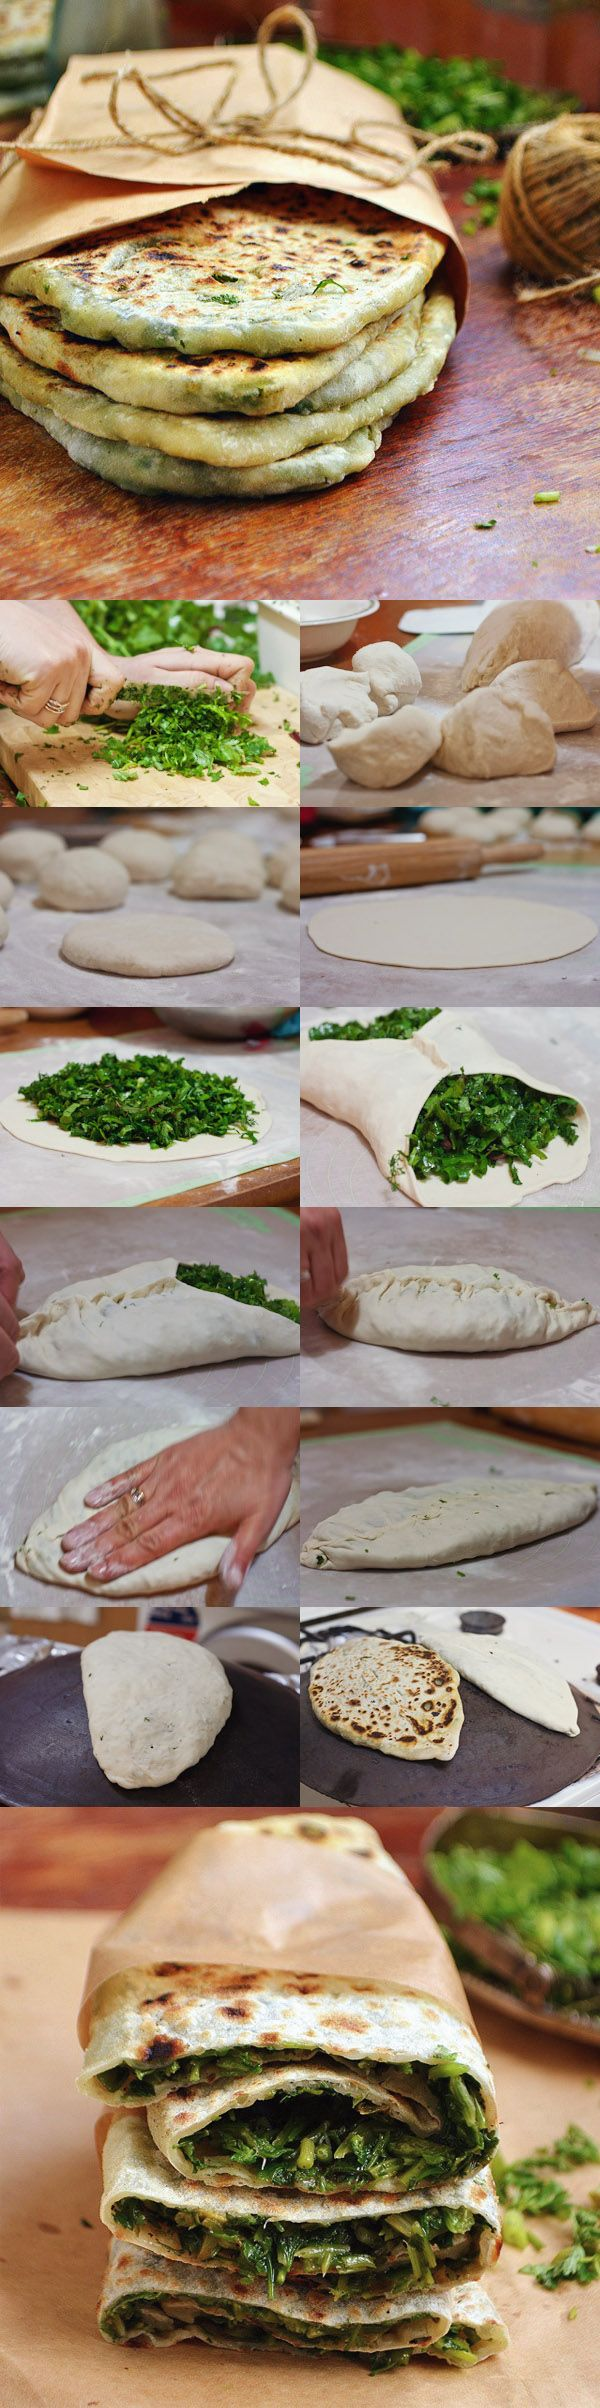 Zhengyalov (Jengyalov) Hats | Armenian flatbread, a specialty of Artsakh, lavash-dough stuffed with foraged local greens #armenianfood #armenianrecipe